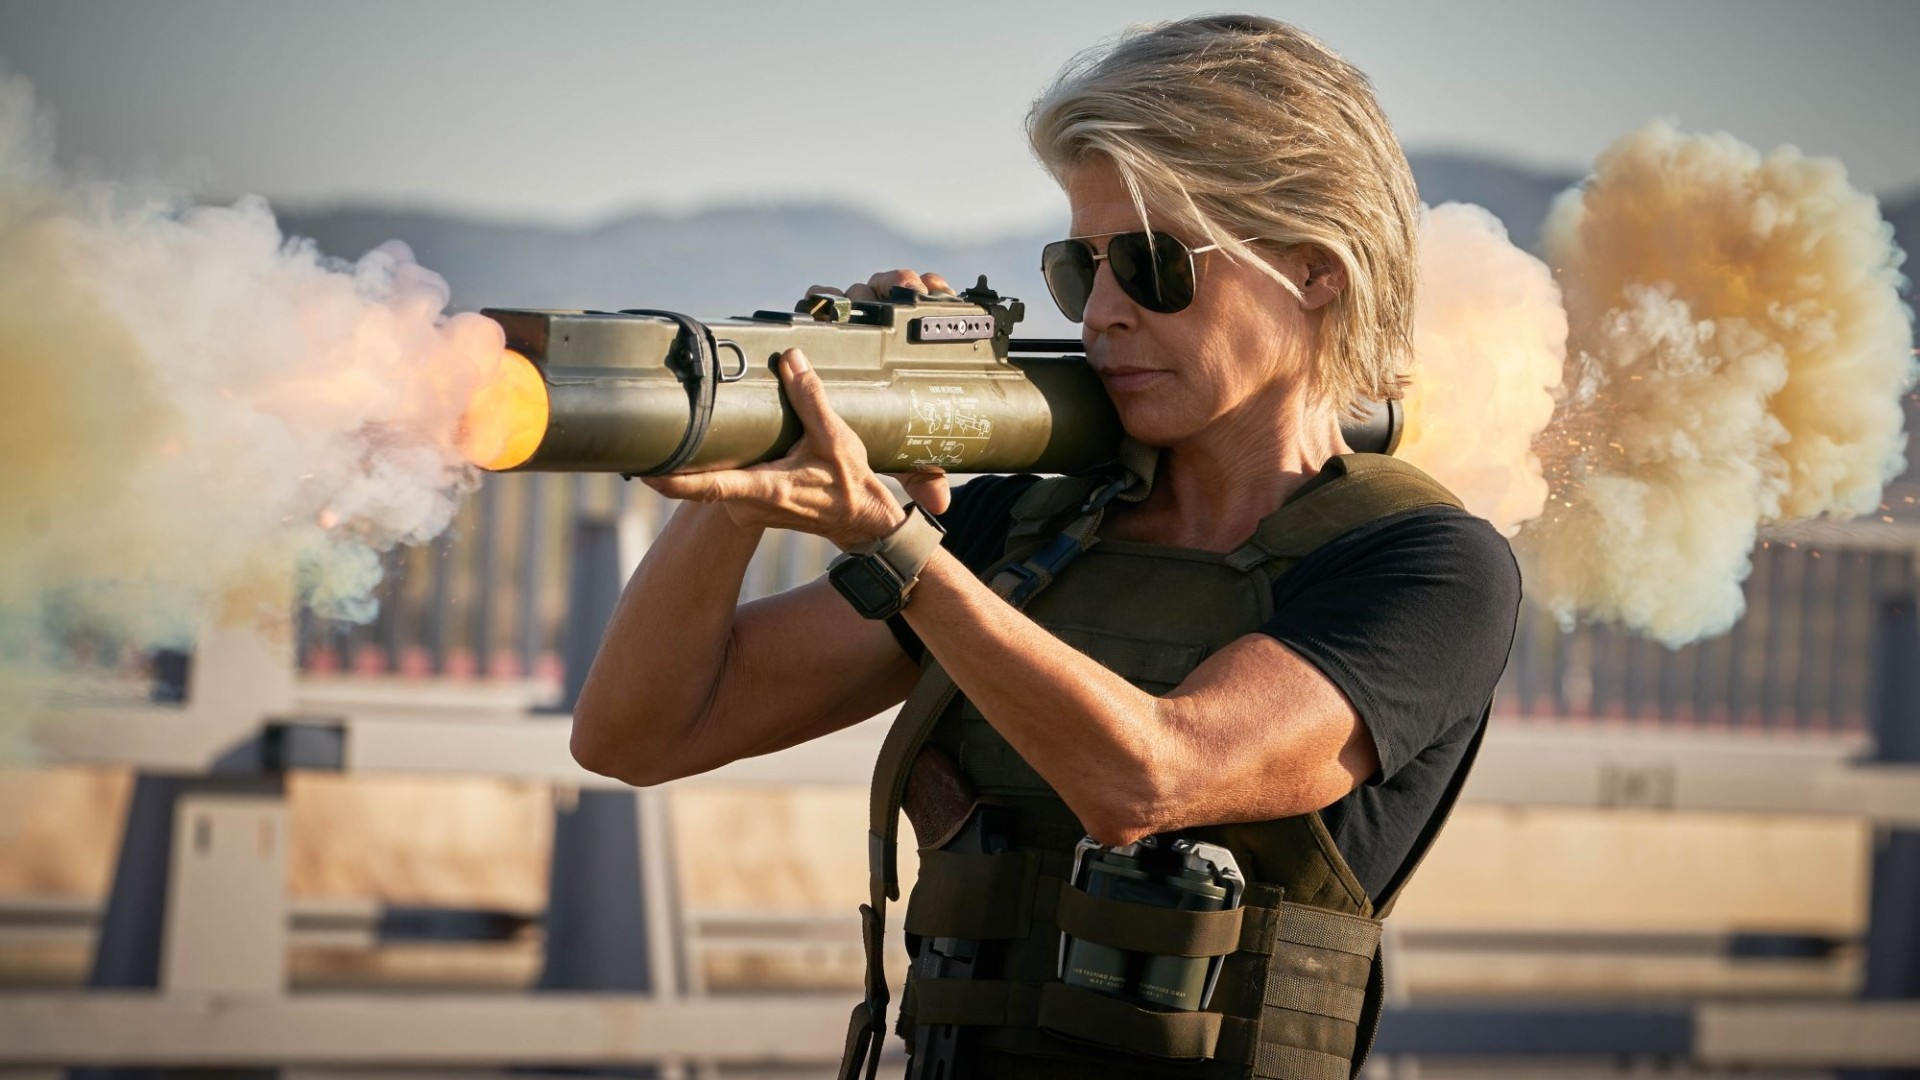 Sarah Connor's motto in life: Speak softly and carry a bazooka.